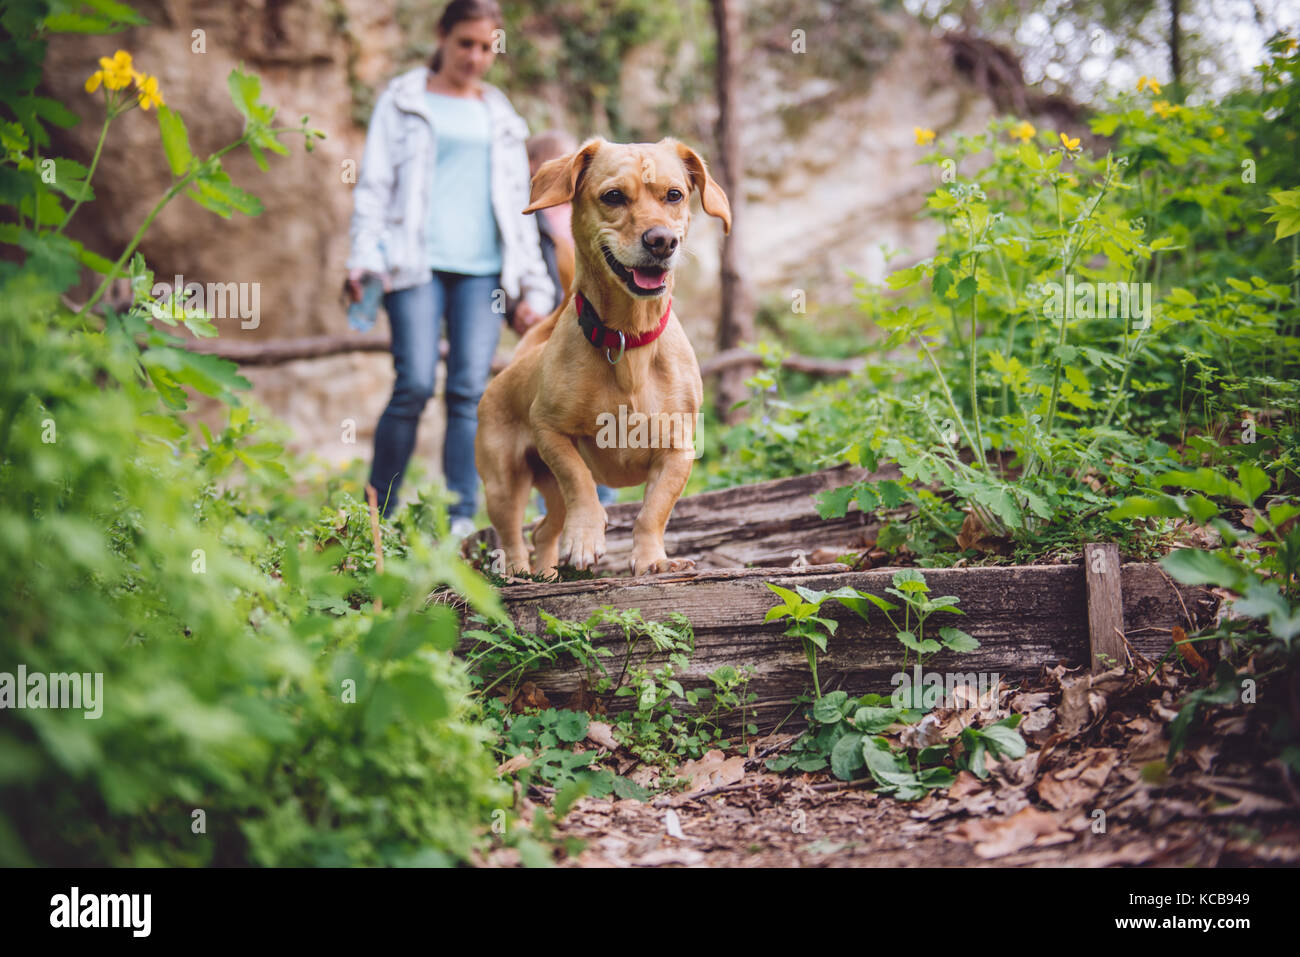 Small yellow Dog on a forest trail with a people walking in the background - Stock Image